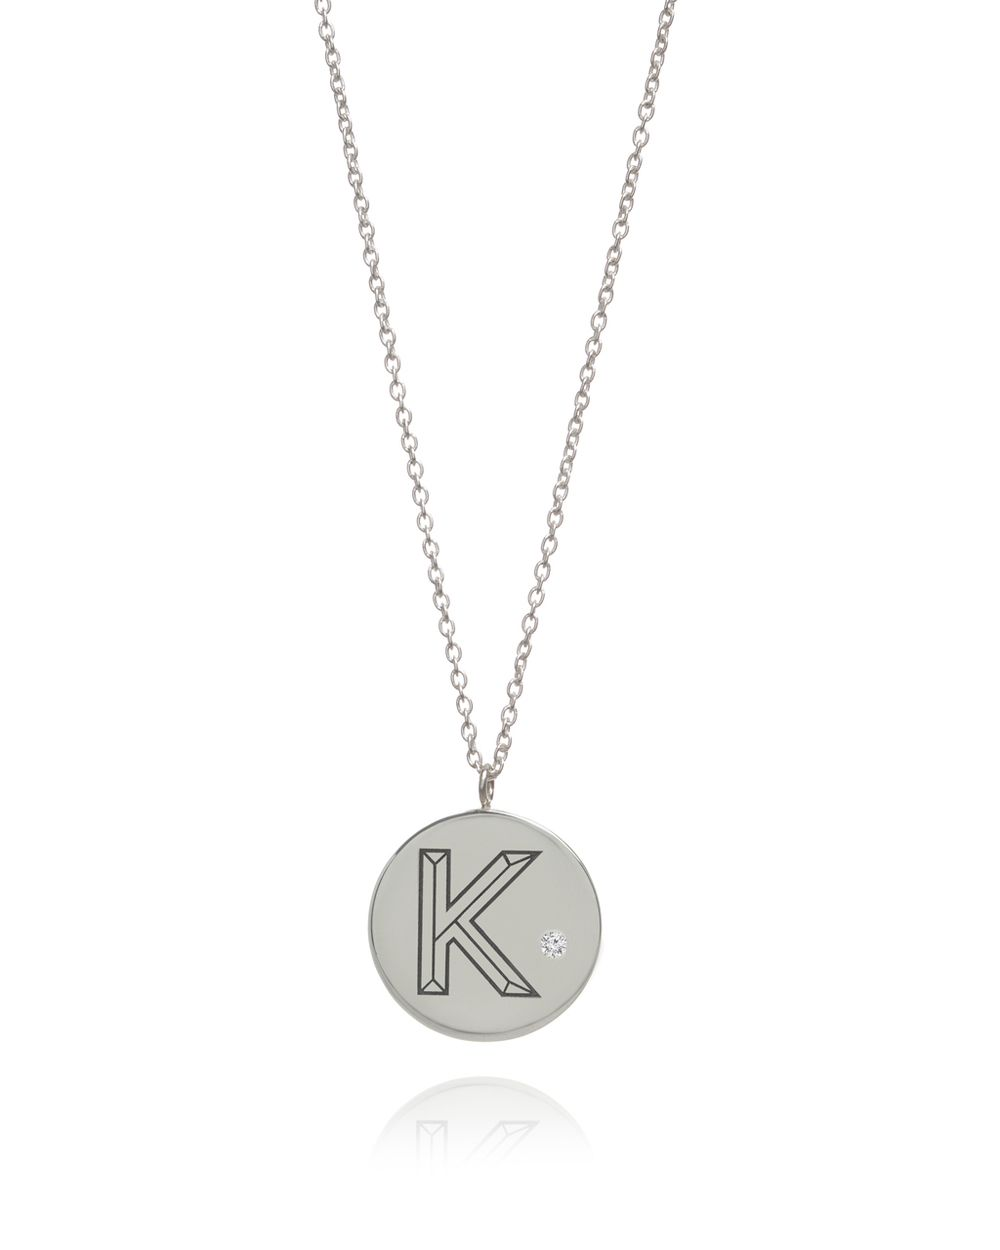 Myia bonner silver facett initial circle pendant necklace made in silver facett initial circle pendant necklace made in england jewellery design mozeypictures Gallery